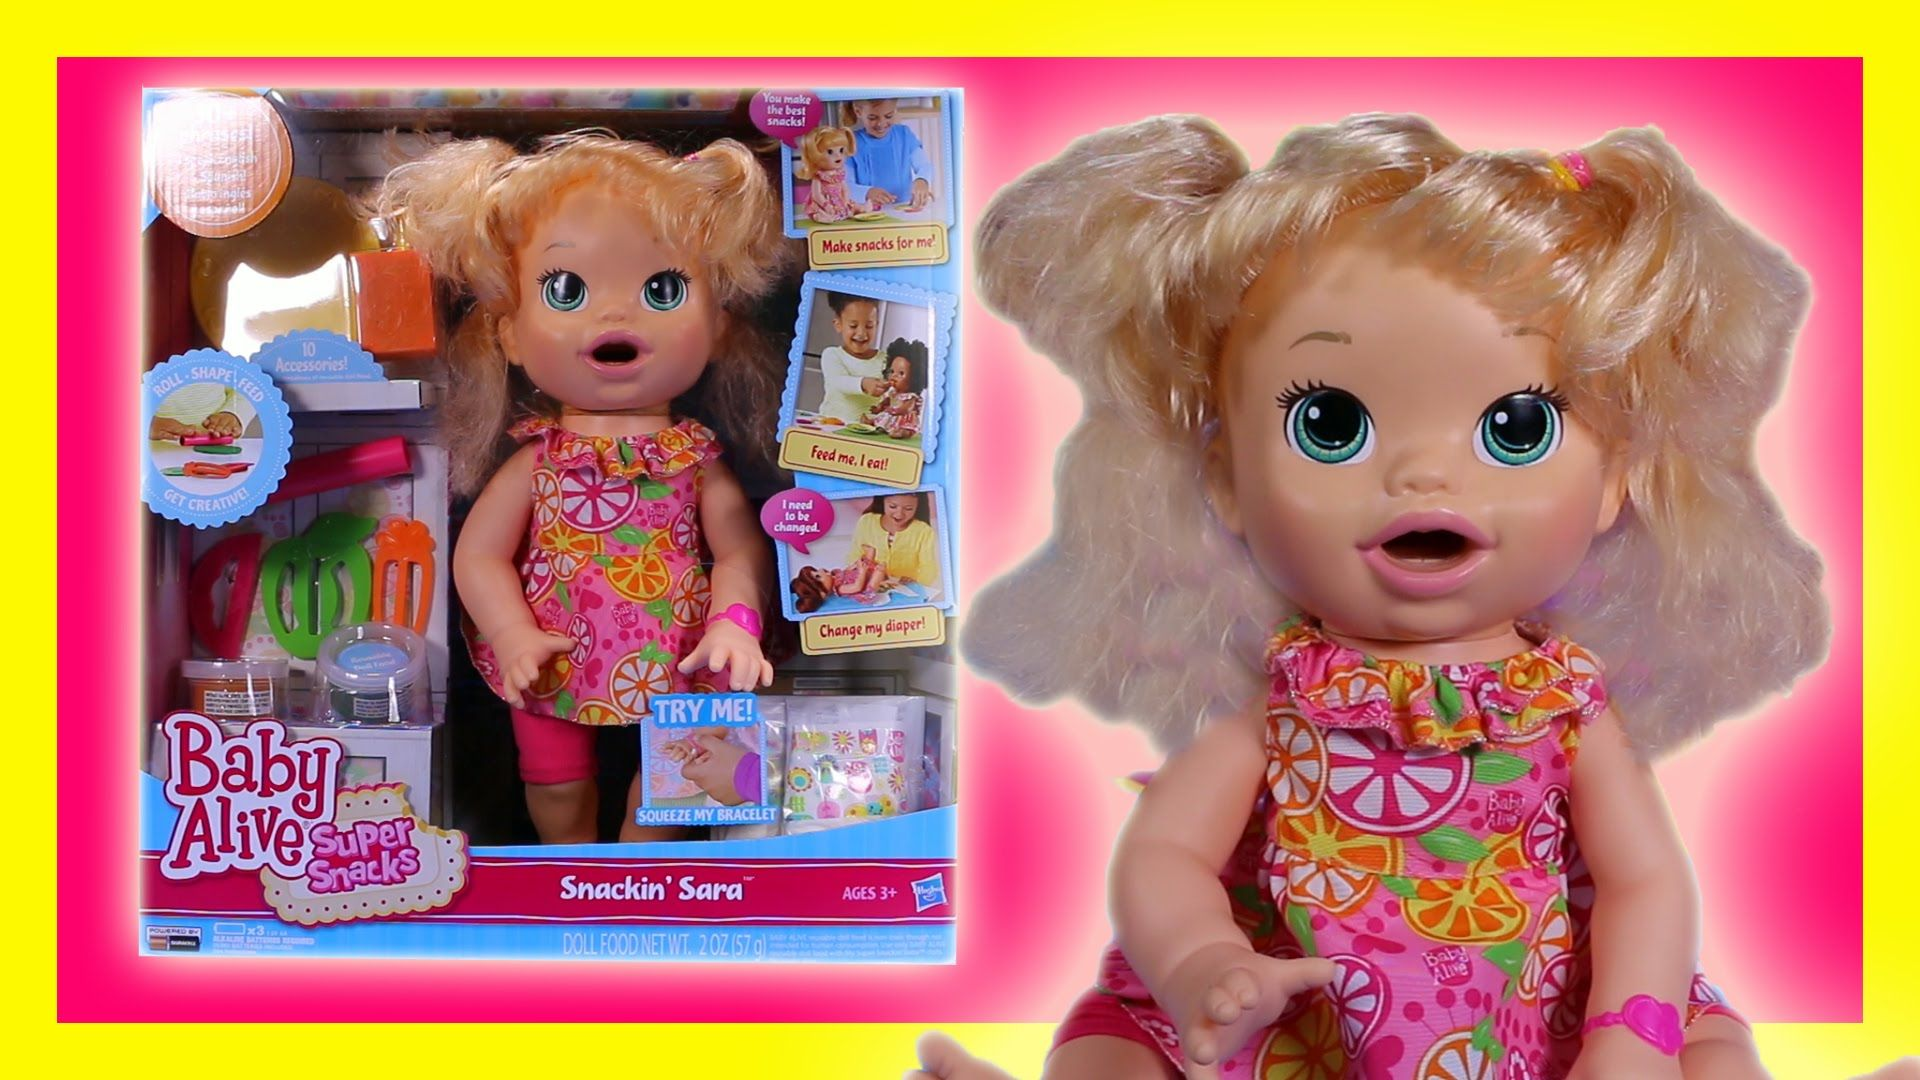 Does Baby Alive Really Eat Play Doh Super Snacks Snackin Sara Doll Toy Review Baby Alive Doll Toys Custom Baby